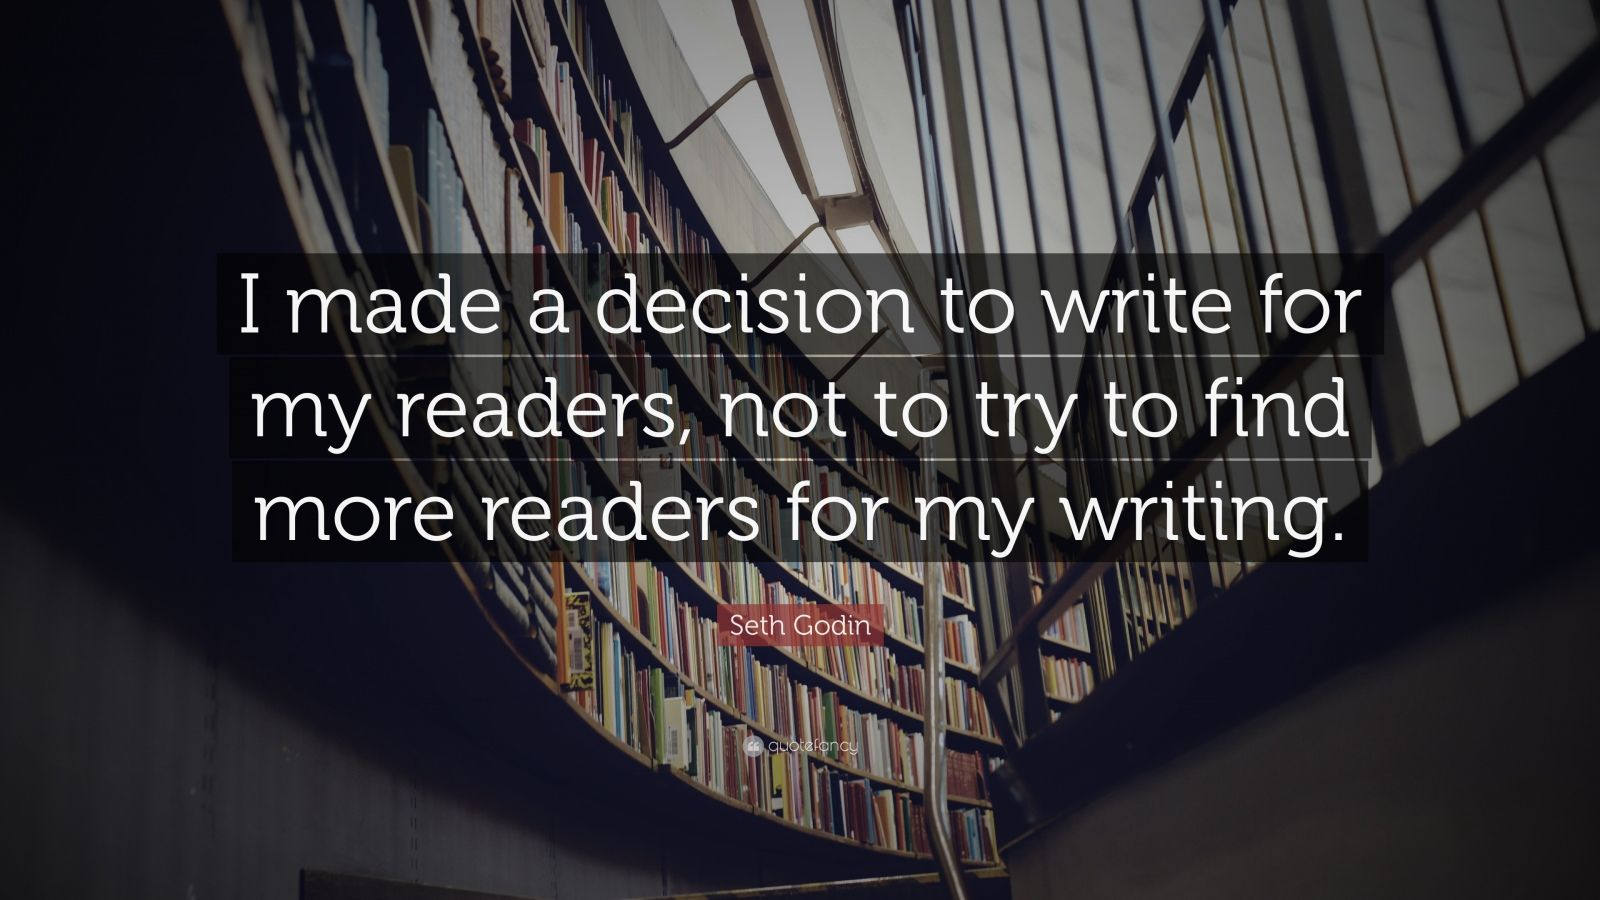 """Seth Godin Quote: """"I made a decision to write for my readers, not to try to find more readers for my writing."""""""